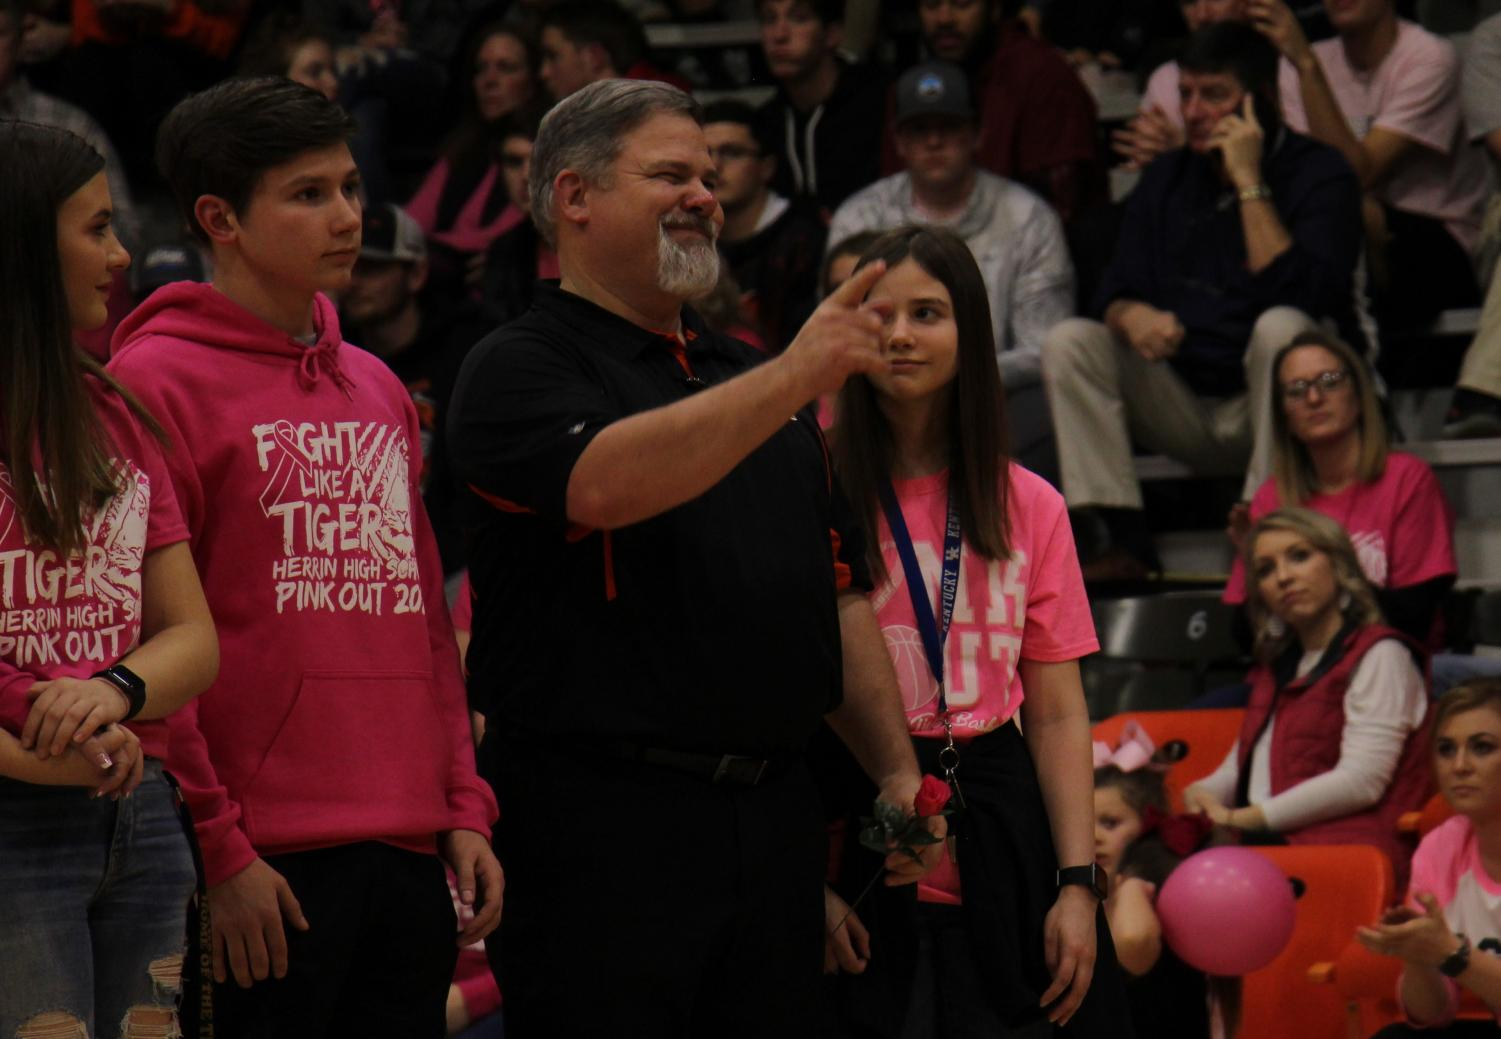 Mr. Johnson points out one of his supporters during the Rose Walk at halftime of the Pink Out game.